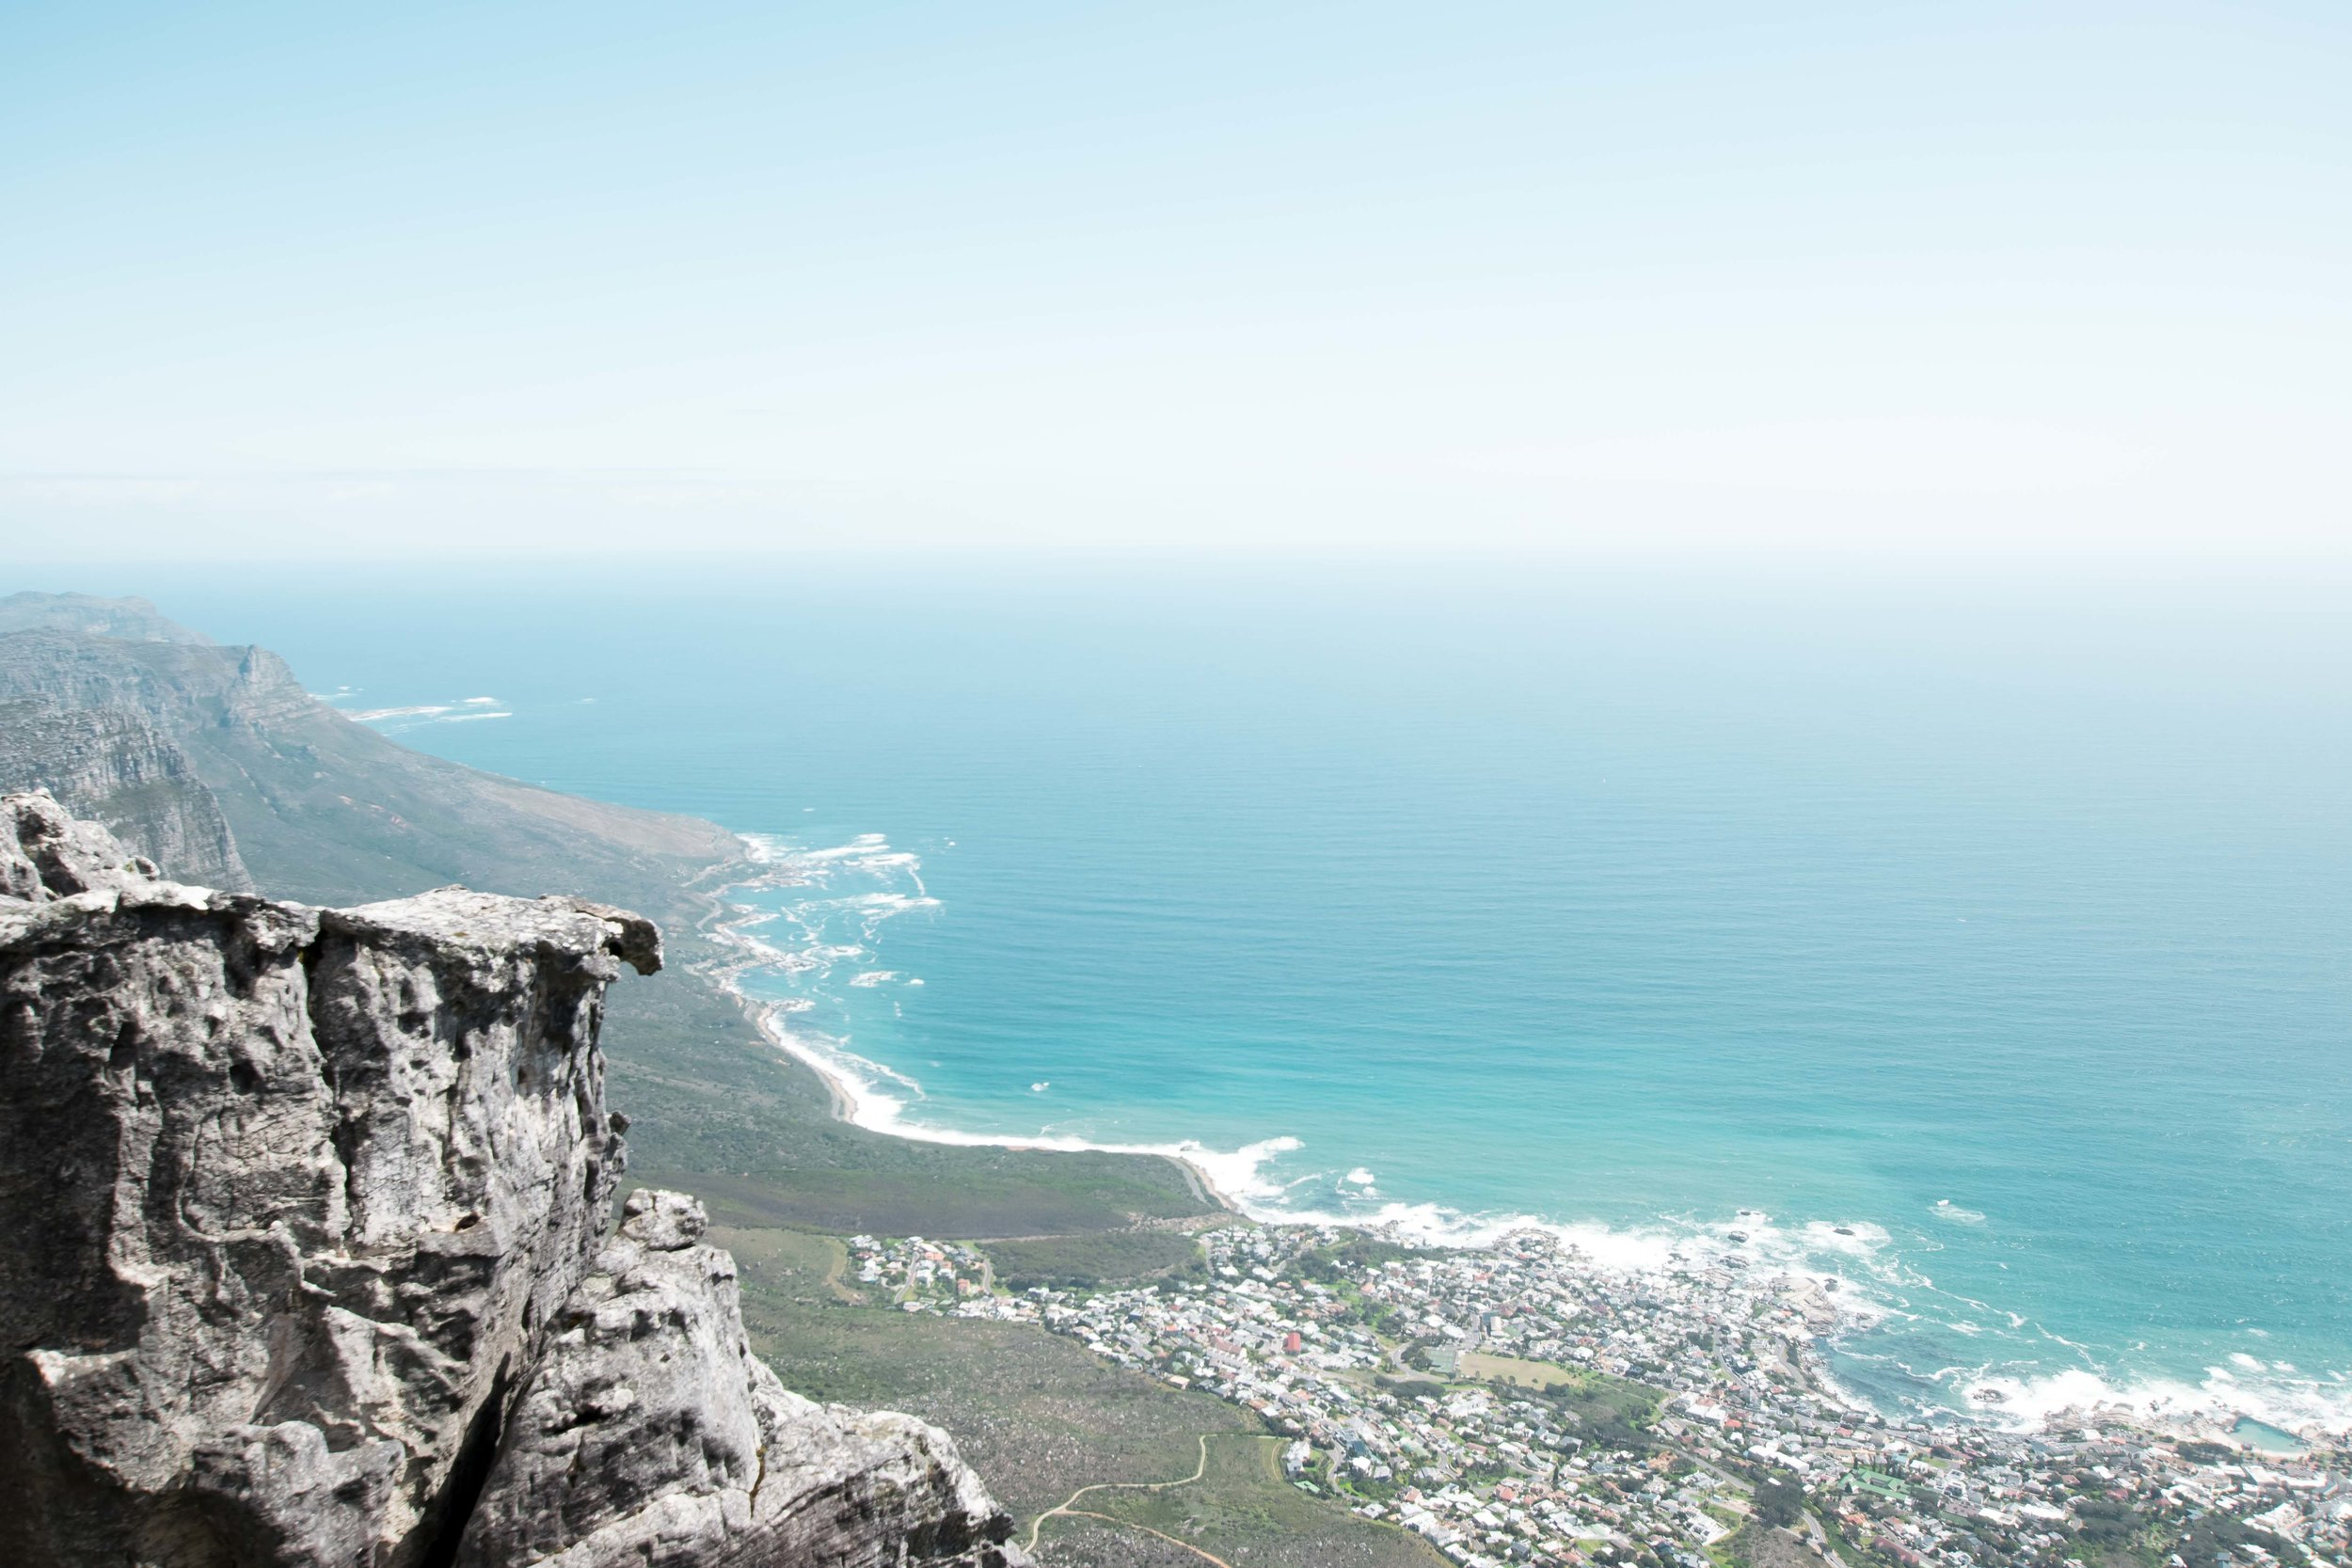 The views from Table Mountain make it one of the top places to go in Cape Town.